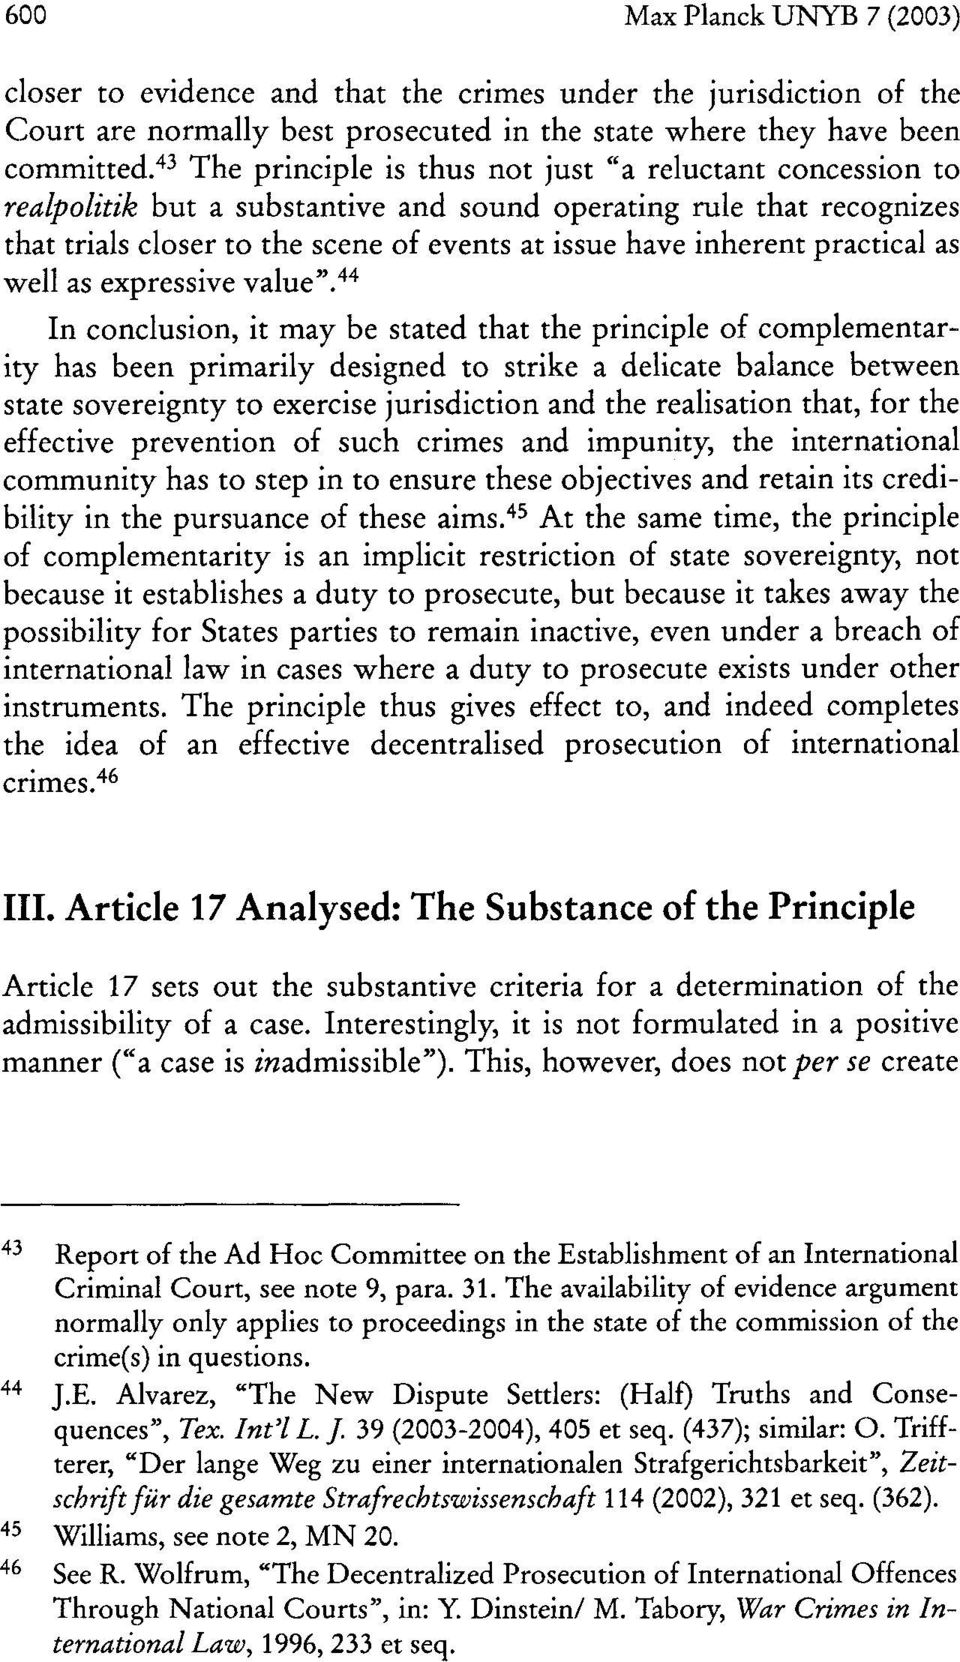 The Preamble of the Rome Statute of the International